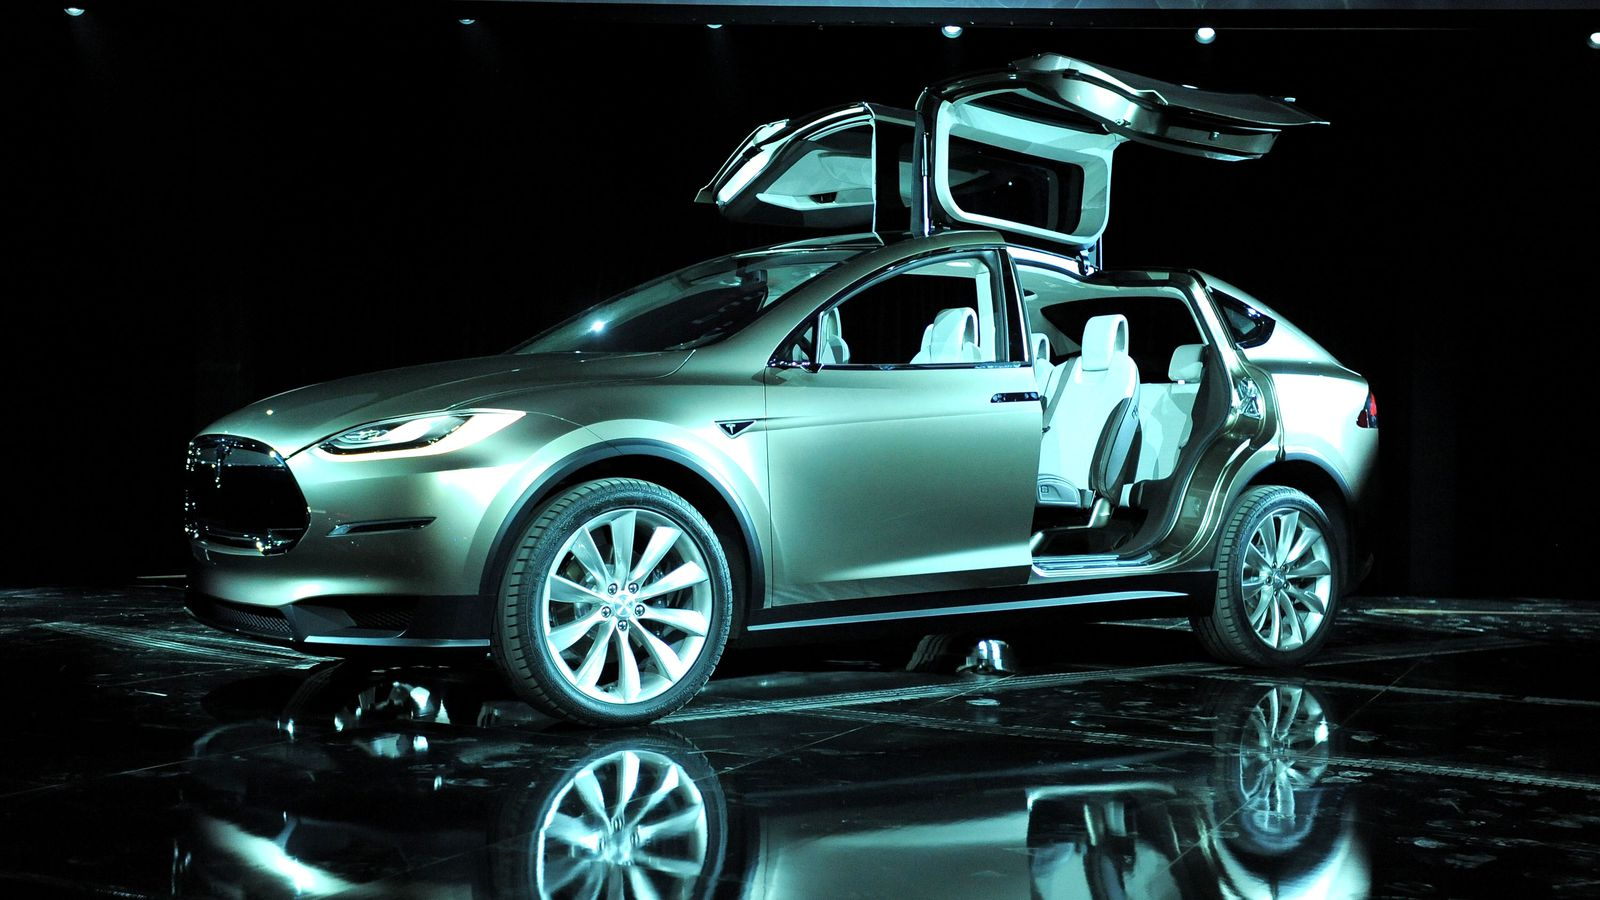 Teslas Big Bet 8000 Worth Of Self Driving Hardware In All New Cars Before The Software Is